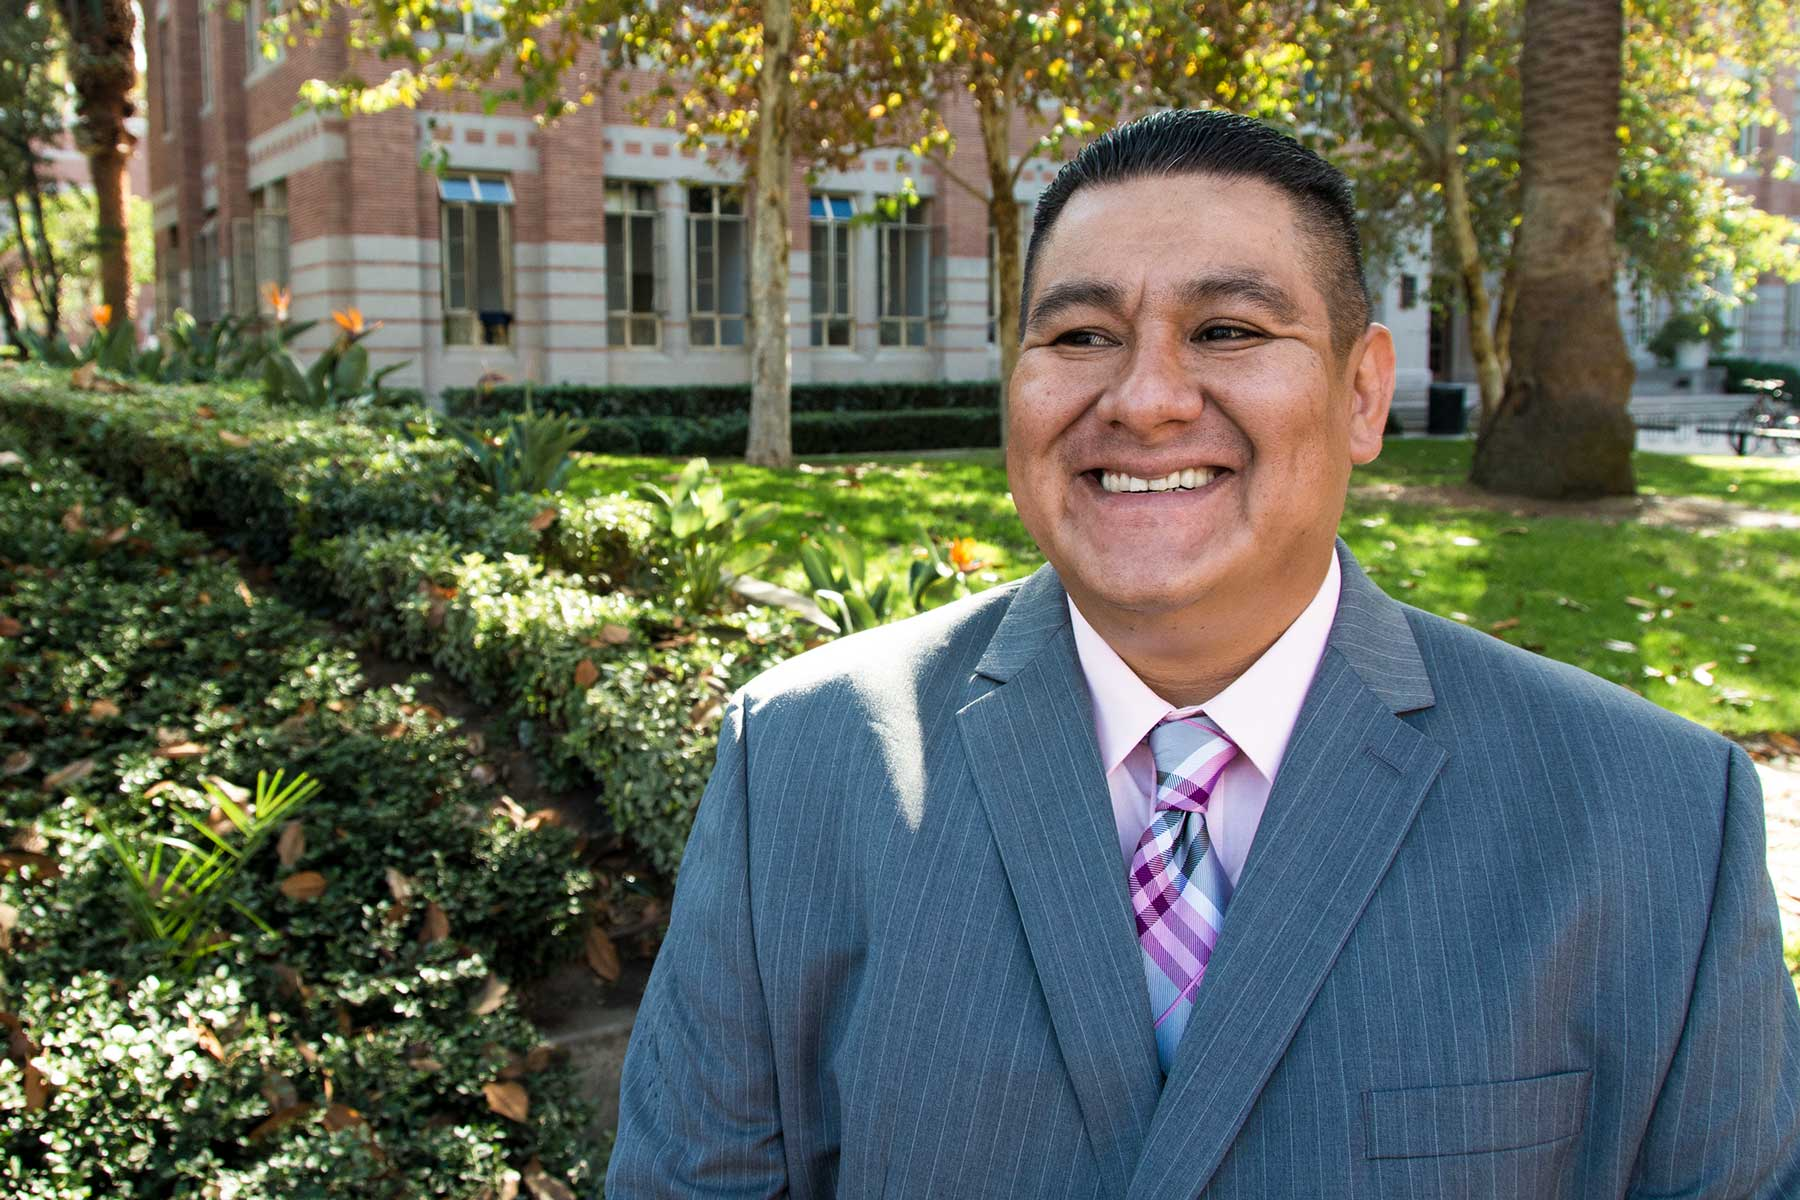 Jose Barron USC social work